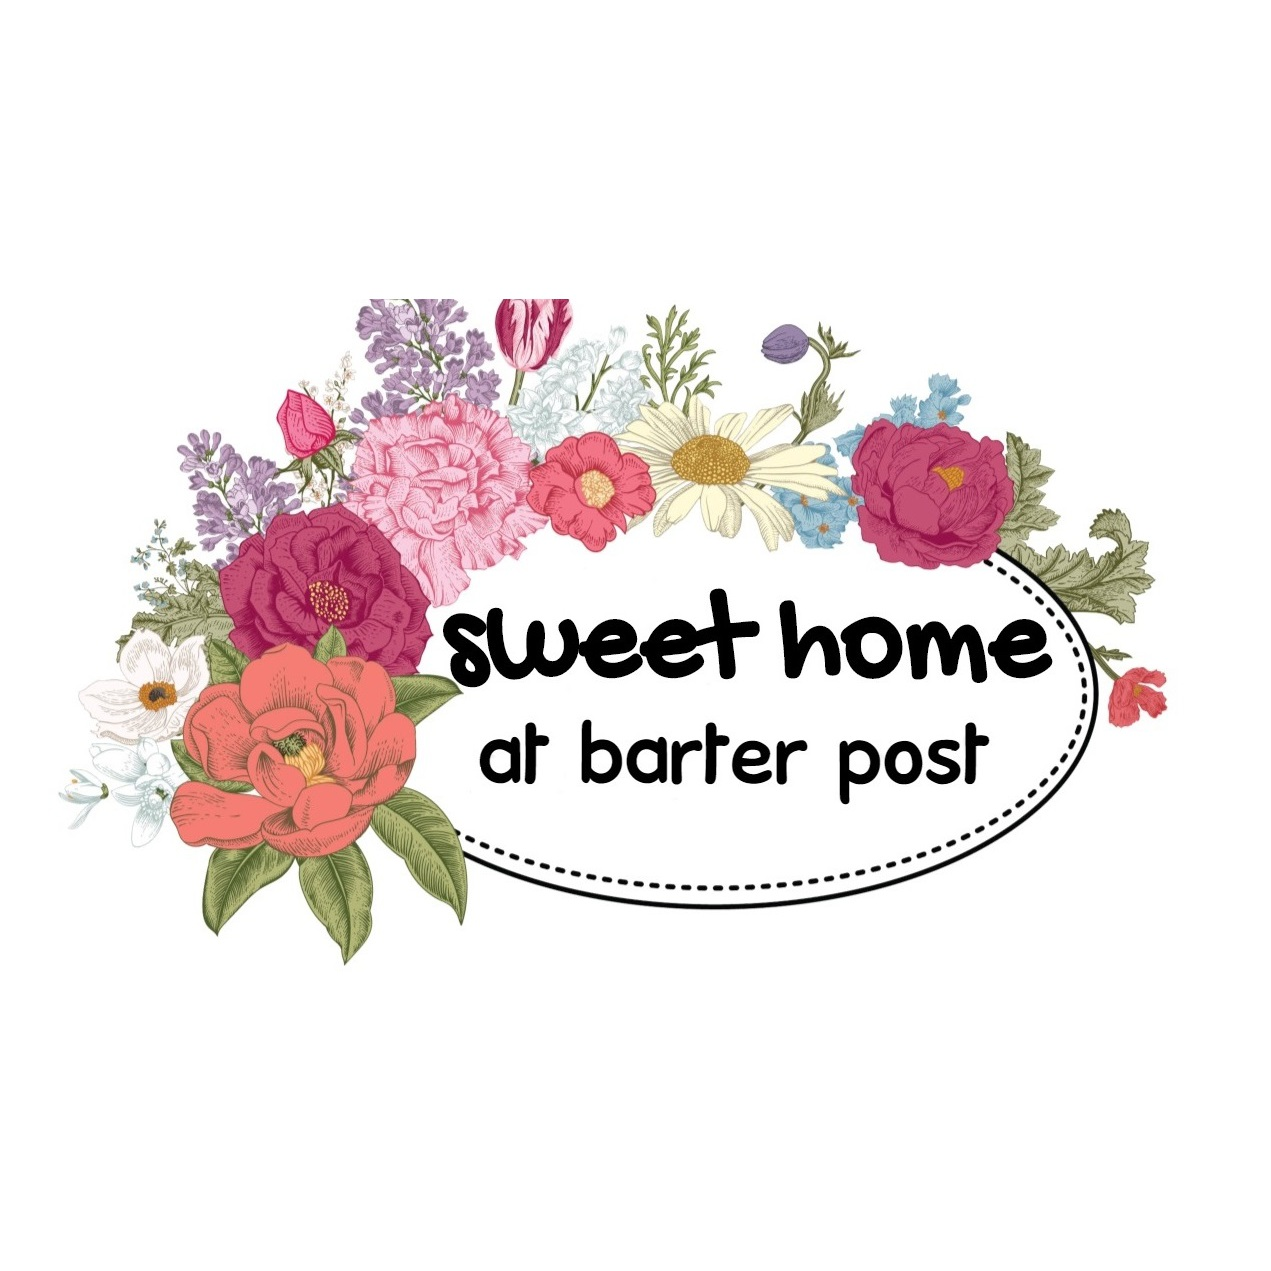 Sweet Home at Barter Post - Fort Payne - Rainsville AL - Rainsville, AL 35986 - (256)638-1555 | ShowMeLocal.com